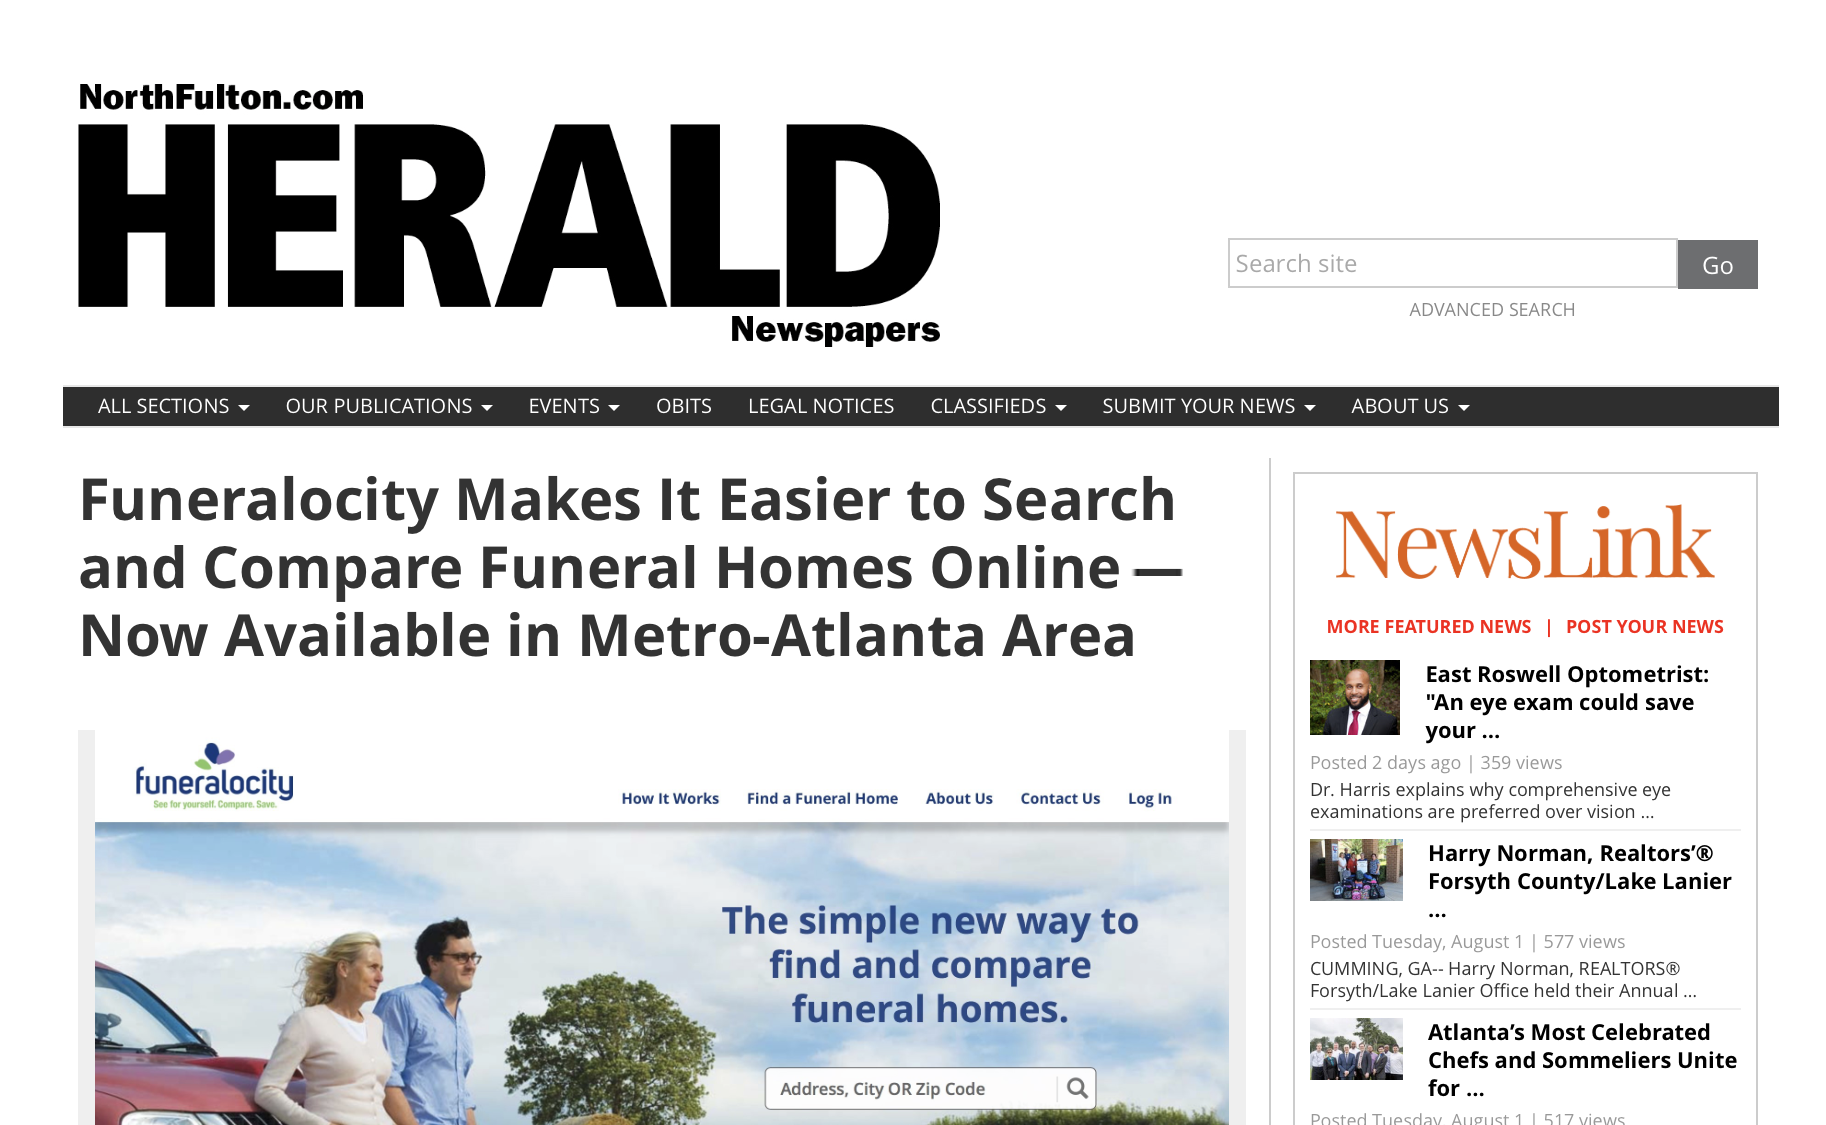 Funeralocity Makes It Easier to Search and Compare Funeral Homes Prices Online